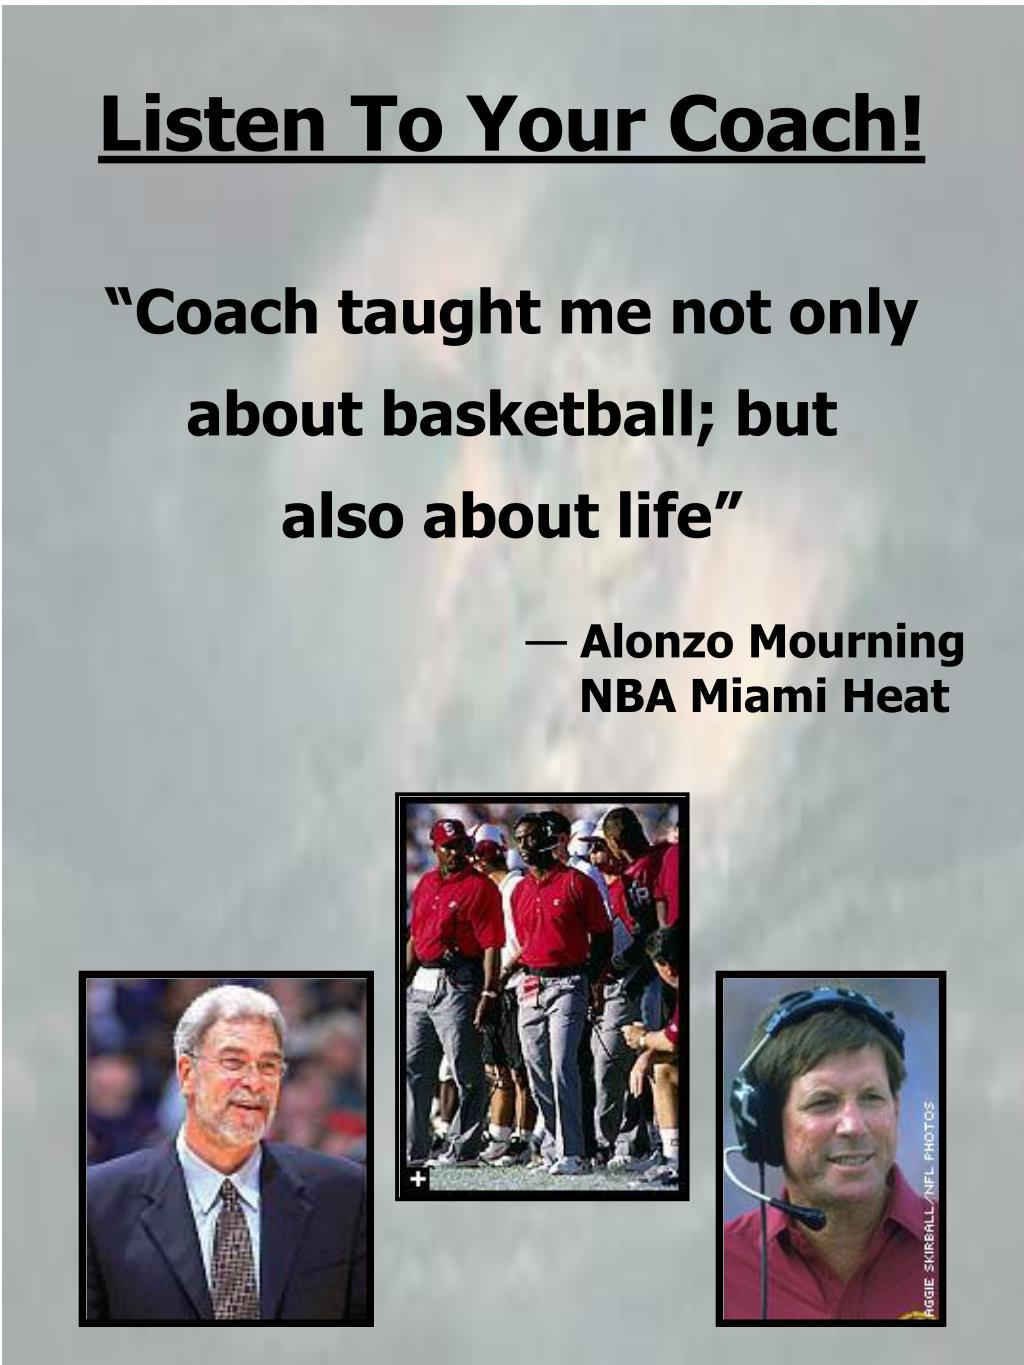 Listen To Your Coach!